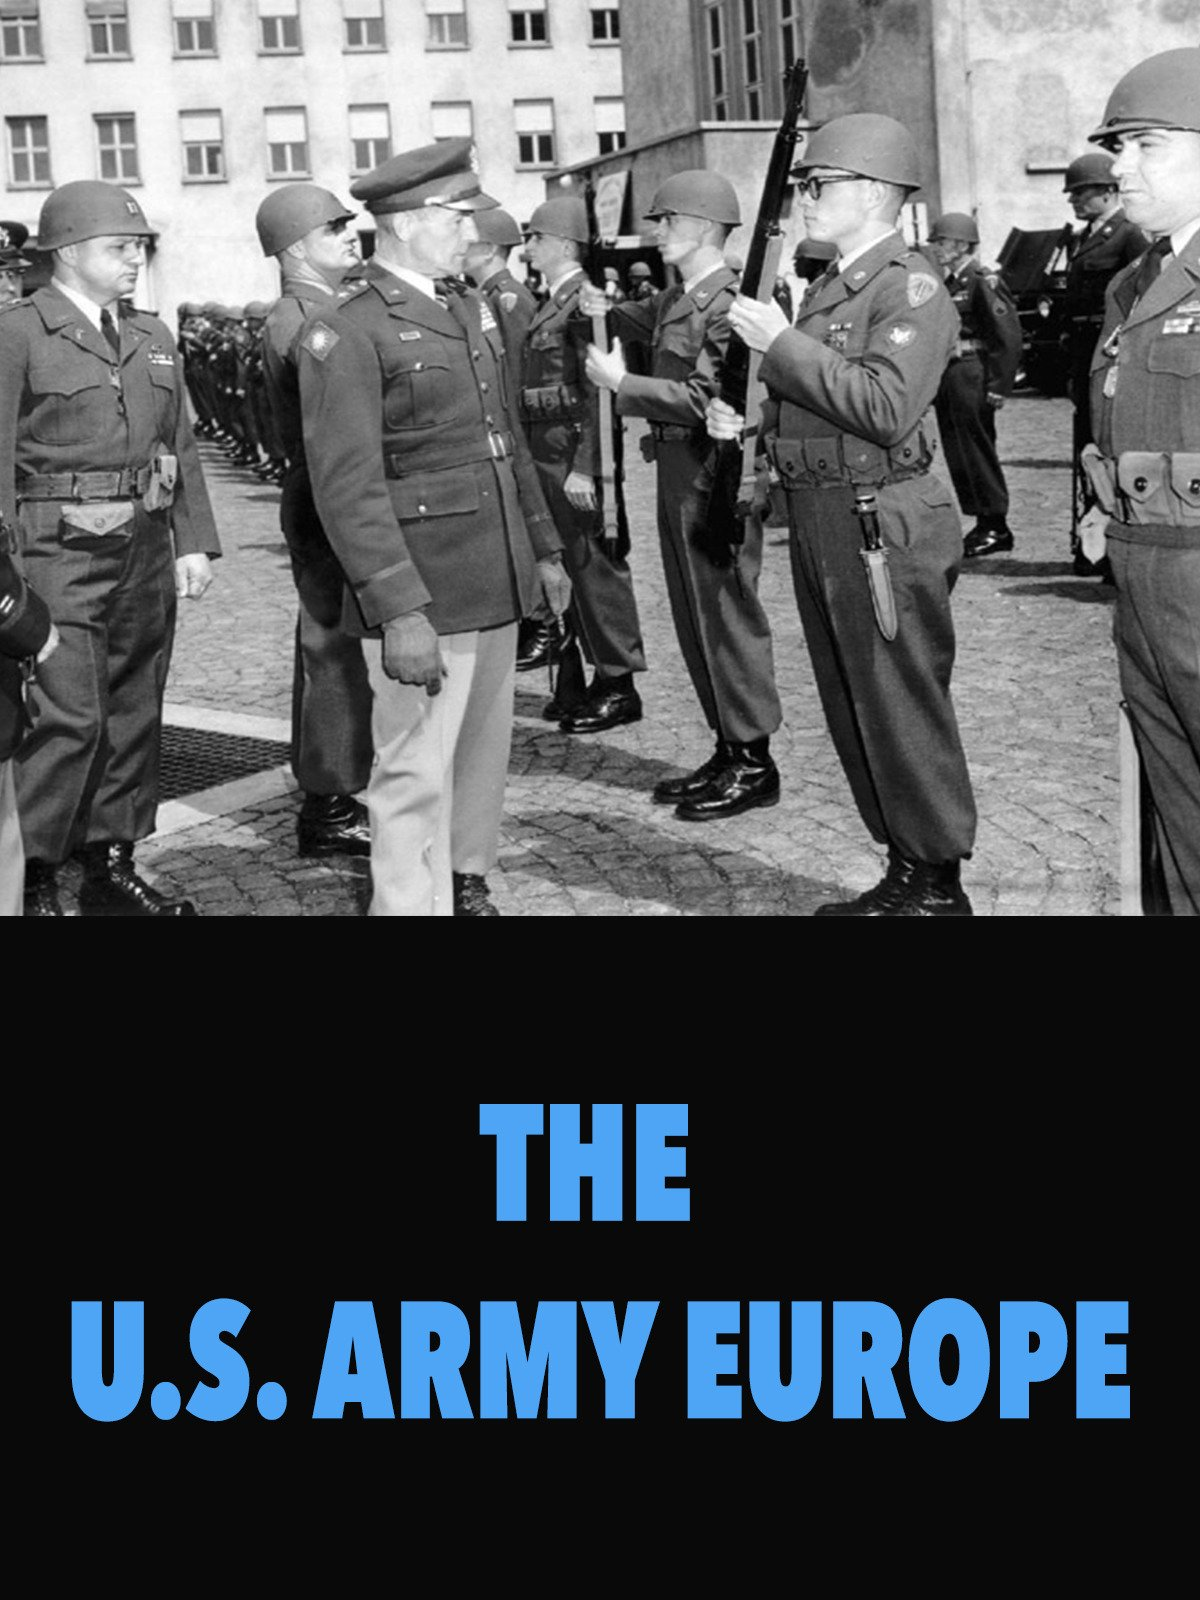 The U.S. Army Europe